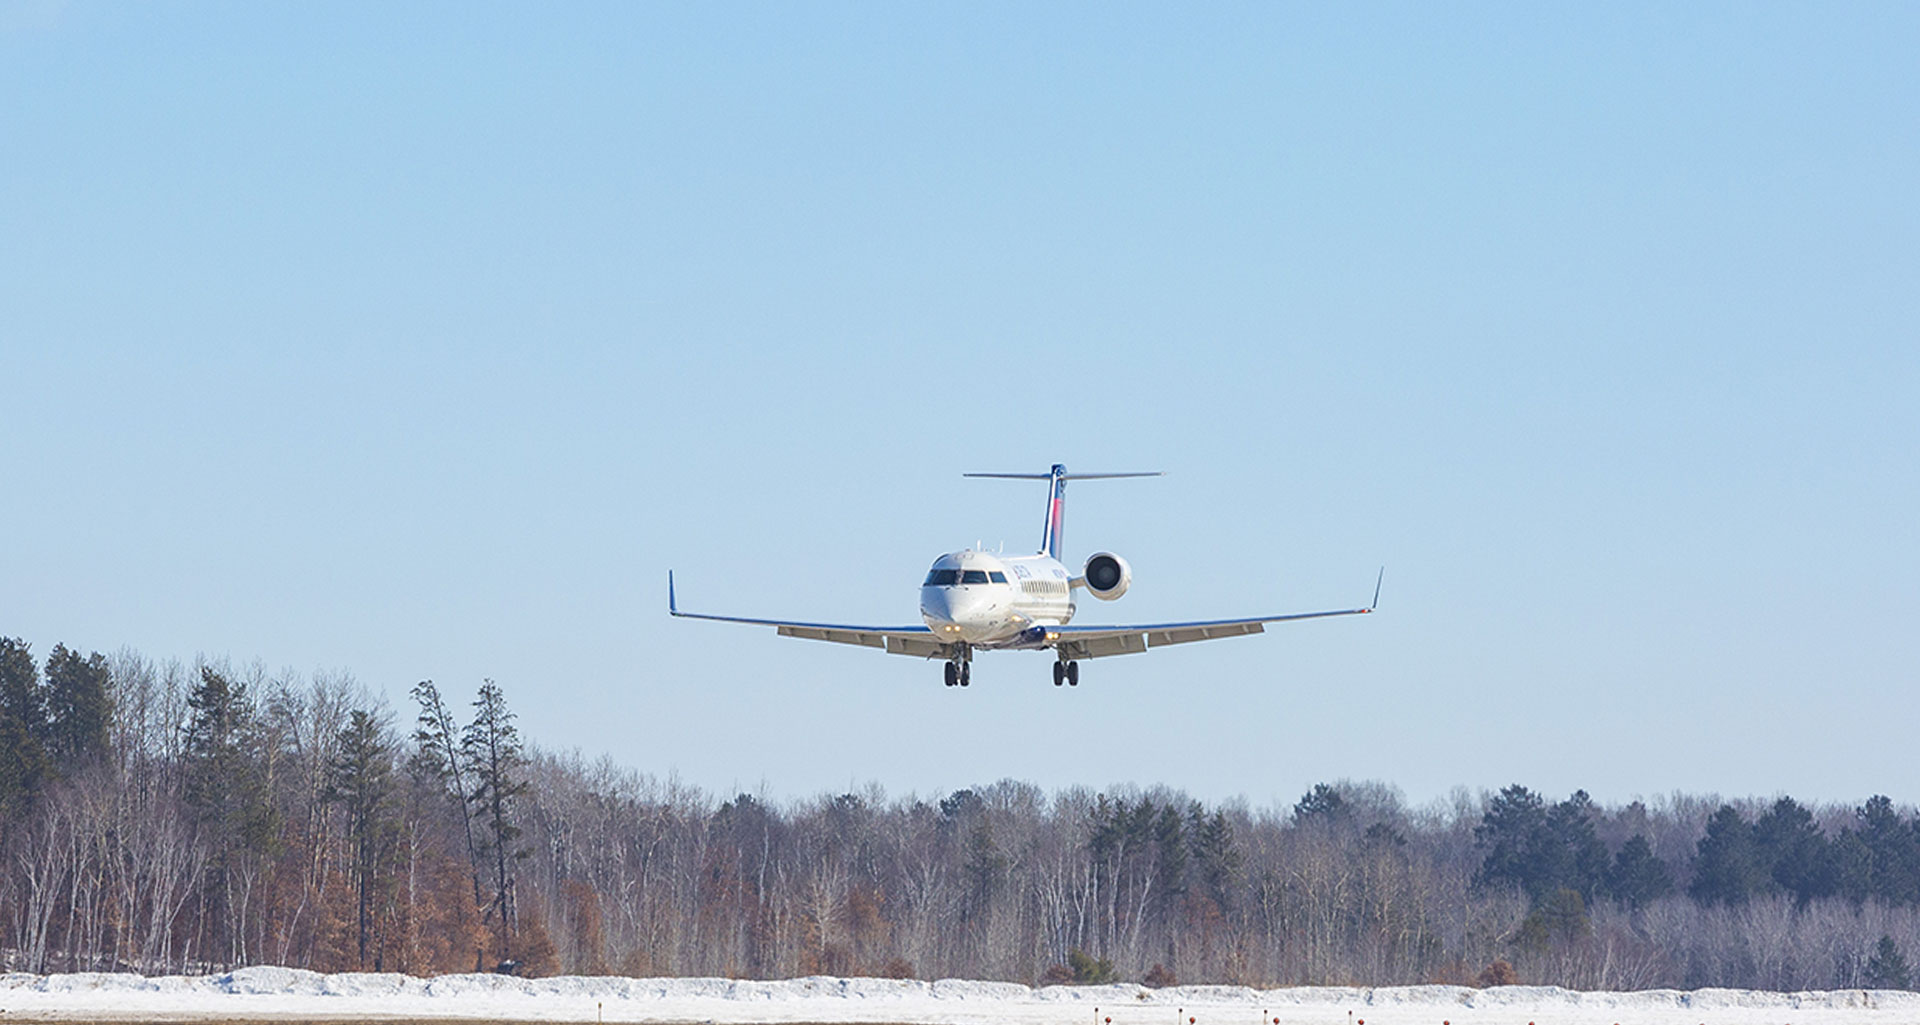 Delta jet approaching the runway for landing.